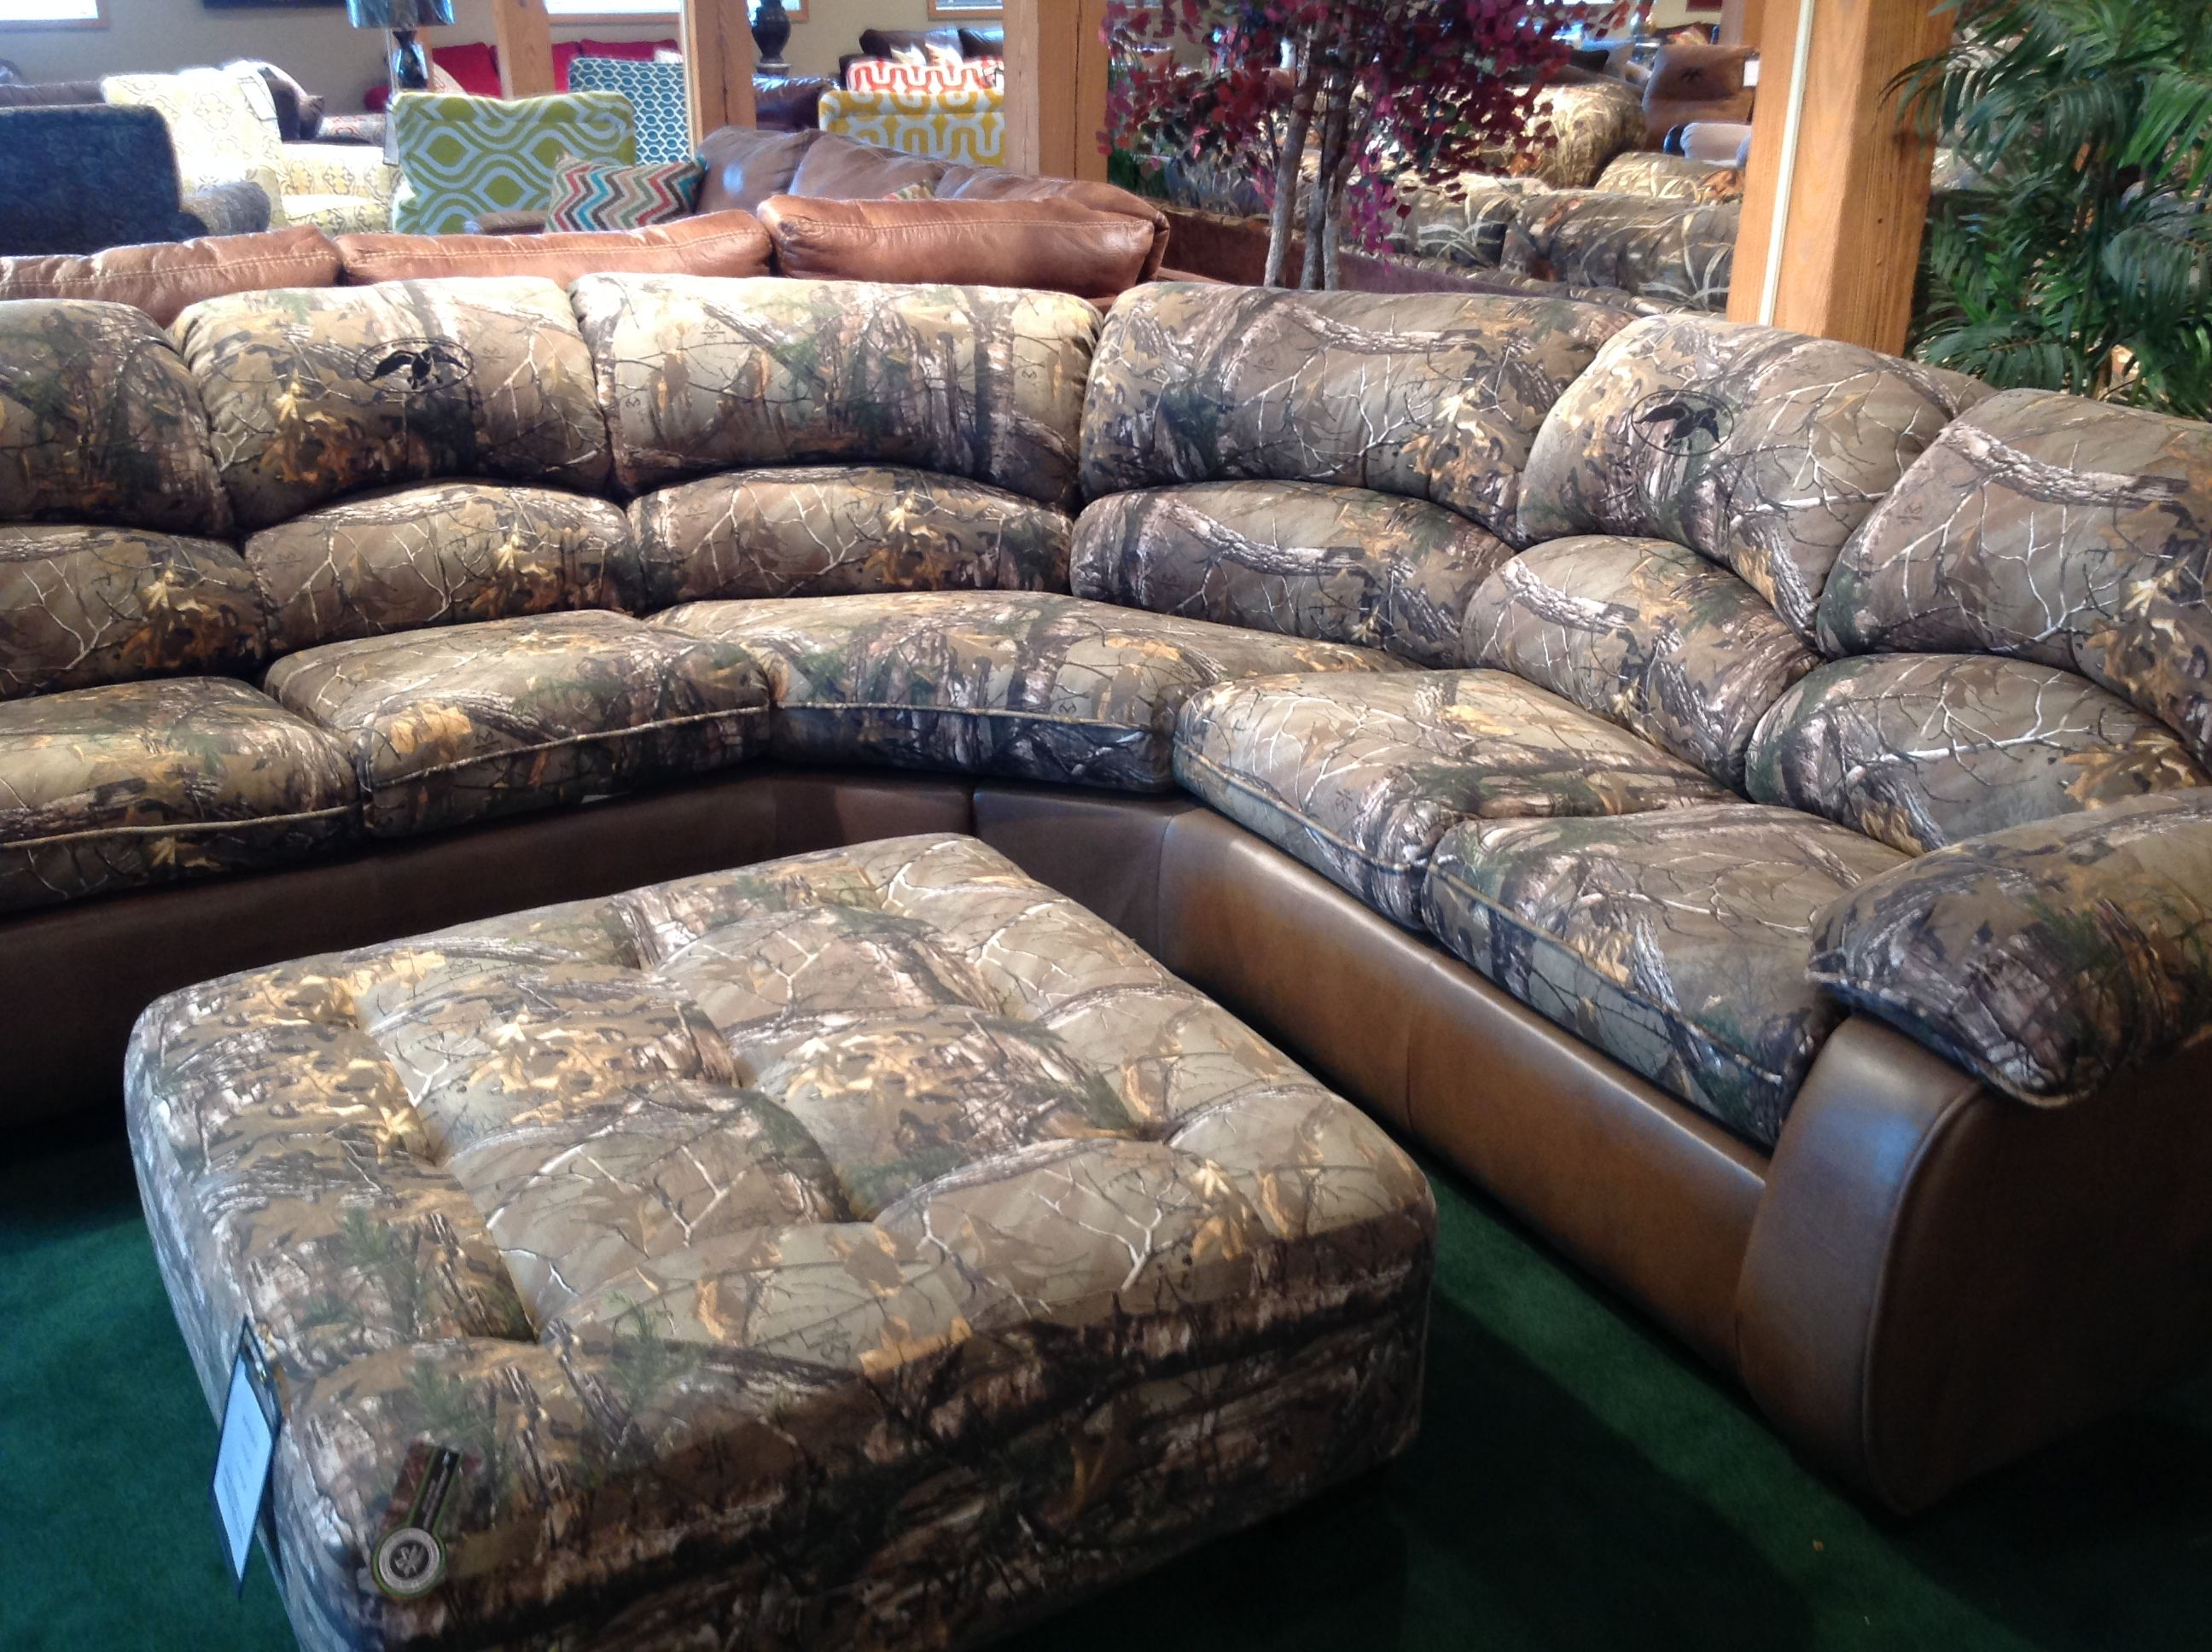 Duck Dynasty Furniture At High Point Market! This Sectional Is Sure To  Catch The Attention